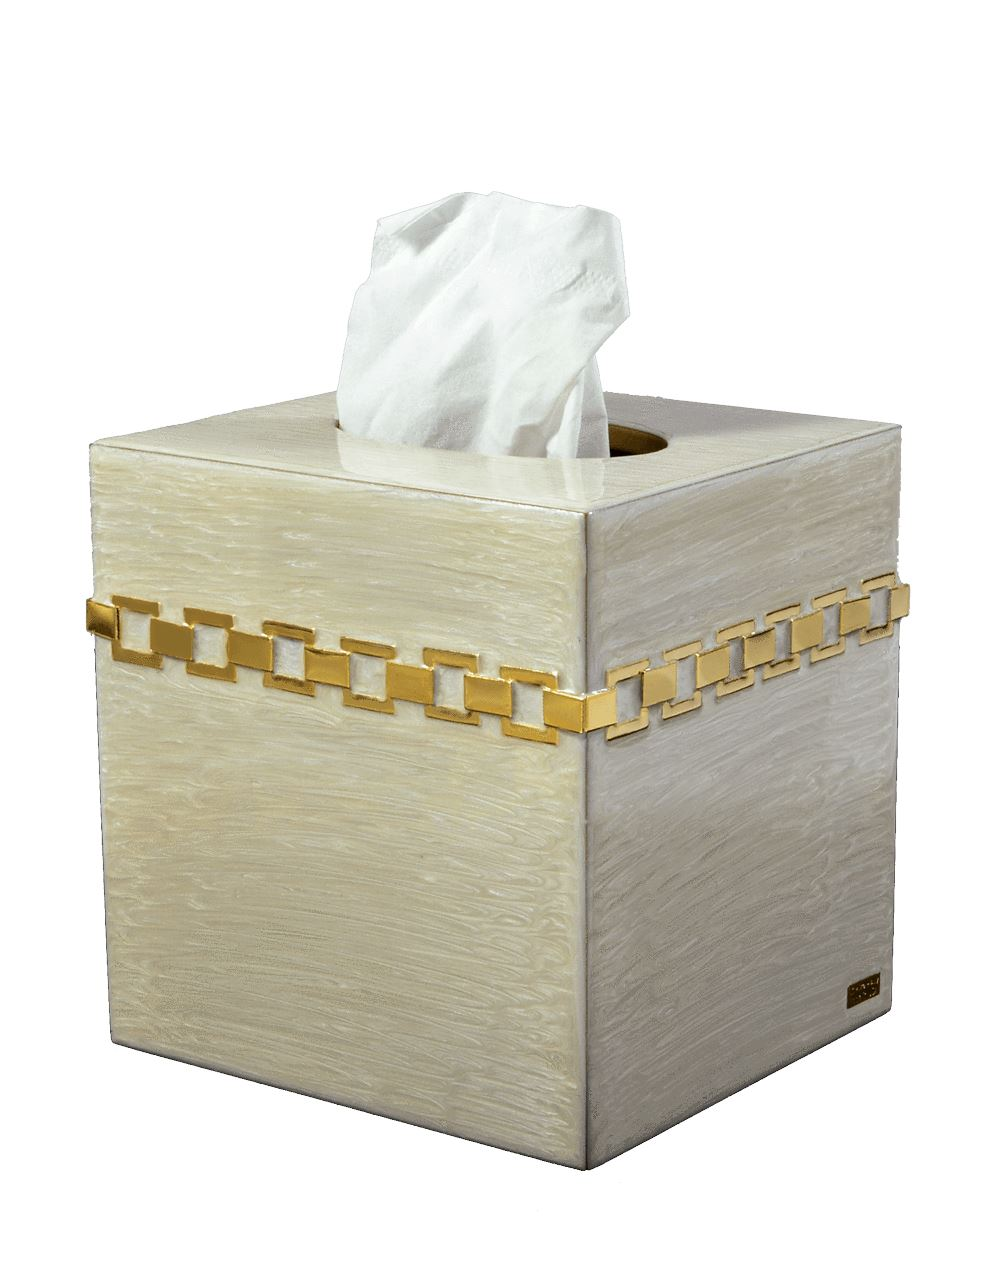 Tissue Box Carlyle Moonglow Collection by Mike + Ally | Fig Linens and Home